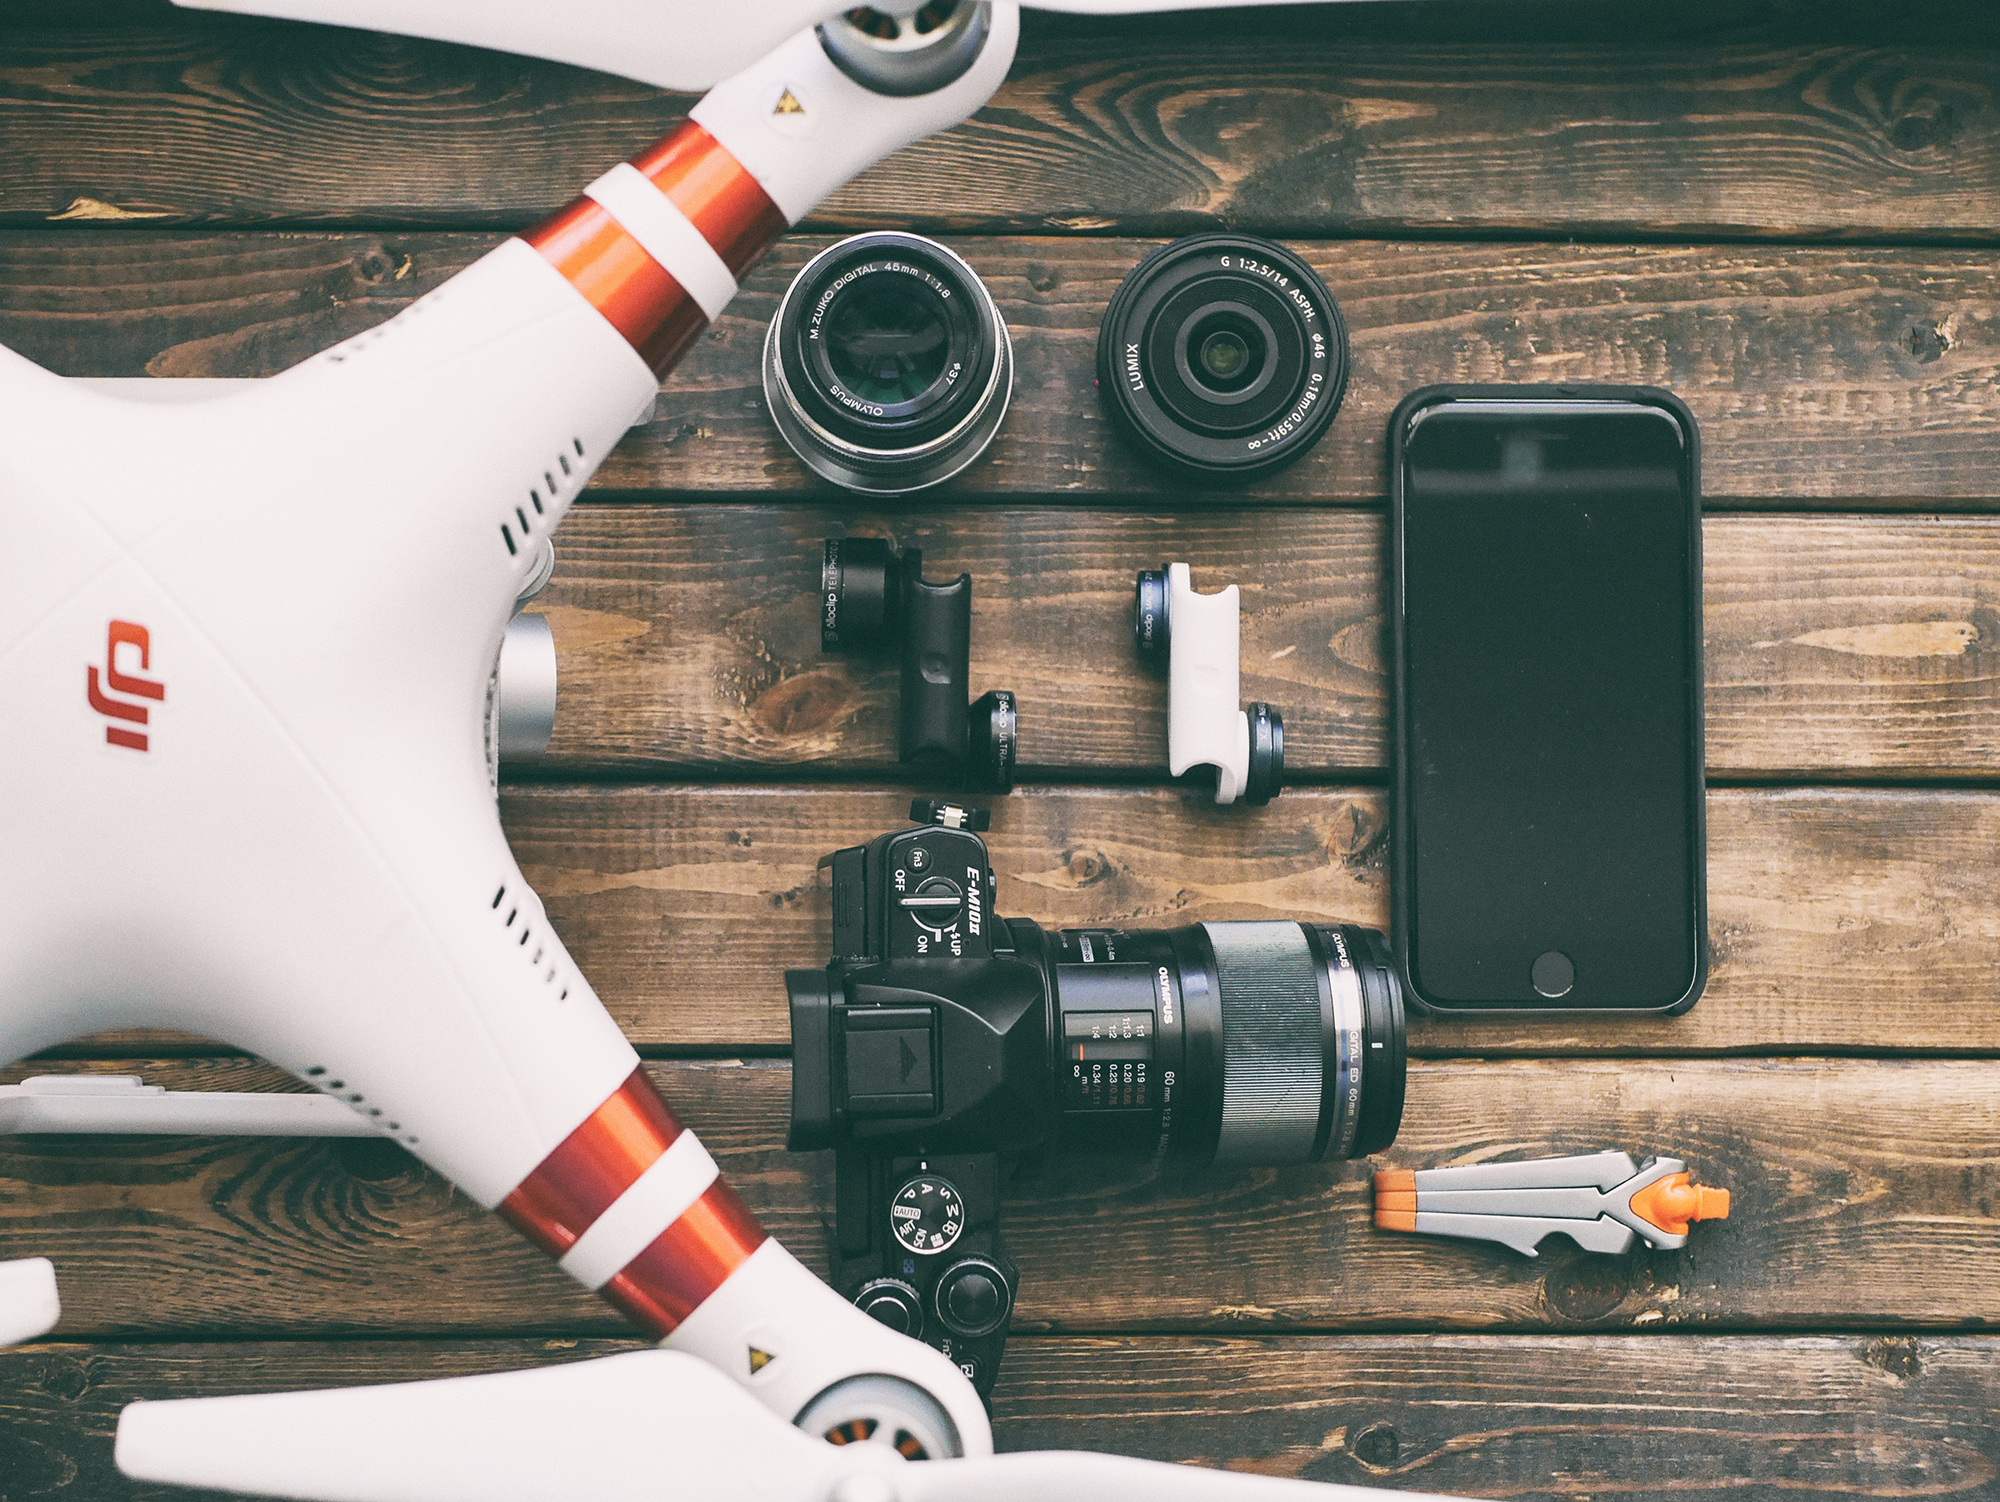 Drone, Camera, and Mobile Phone